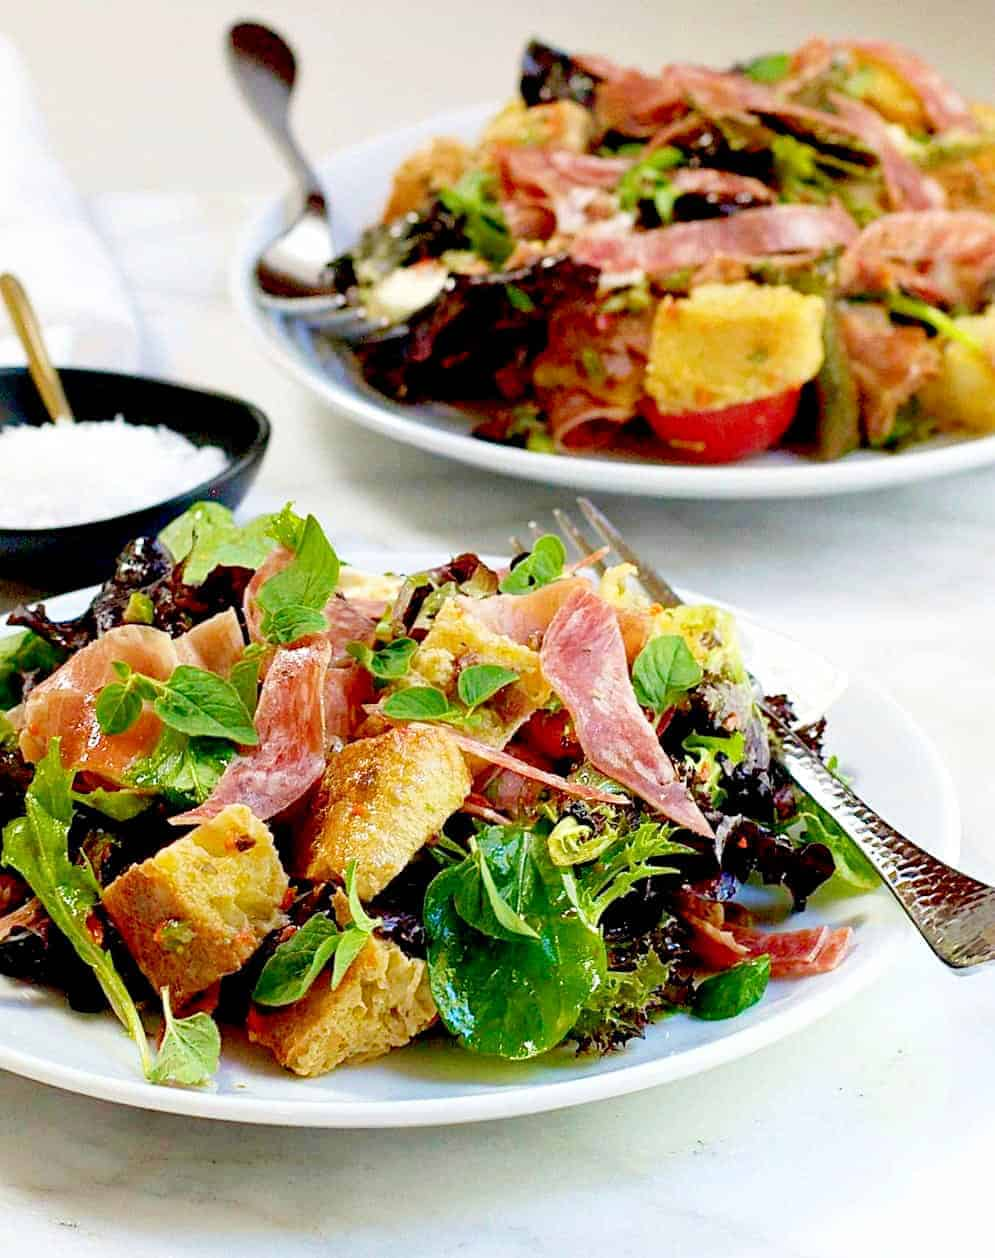 Muffuletta Panzanella Bread Salad served on white plates